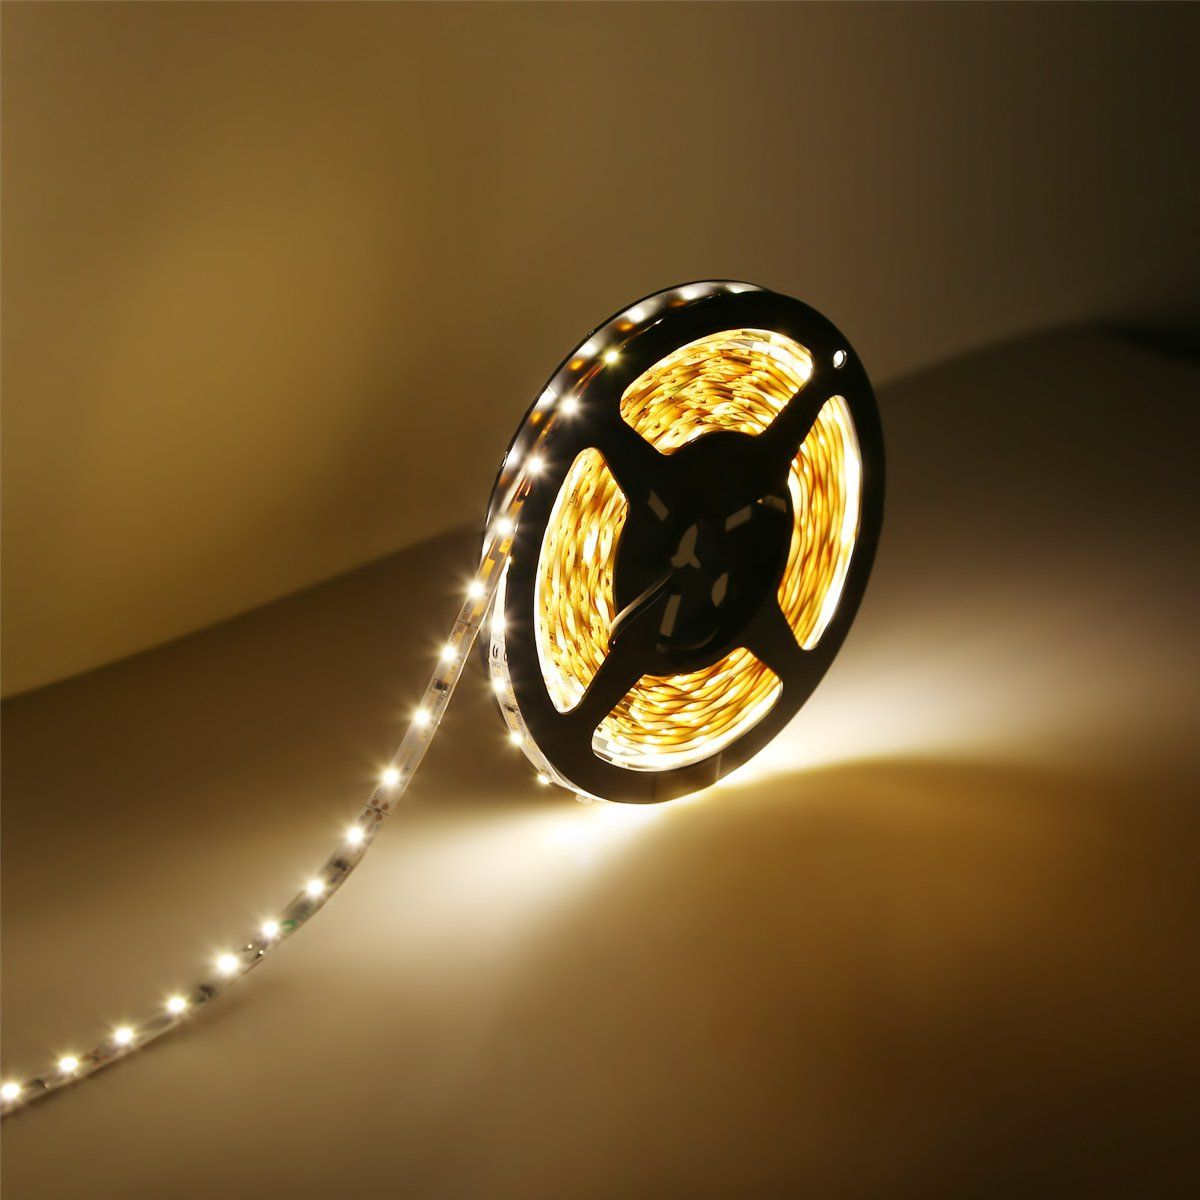 12V Waterproof Led Light Strips Awesome Non Traditional Lighting Ideas Le Lampux 12V Flexible Led Strip Review